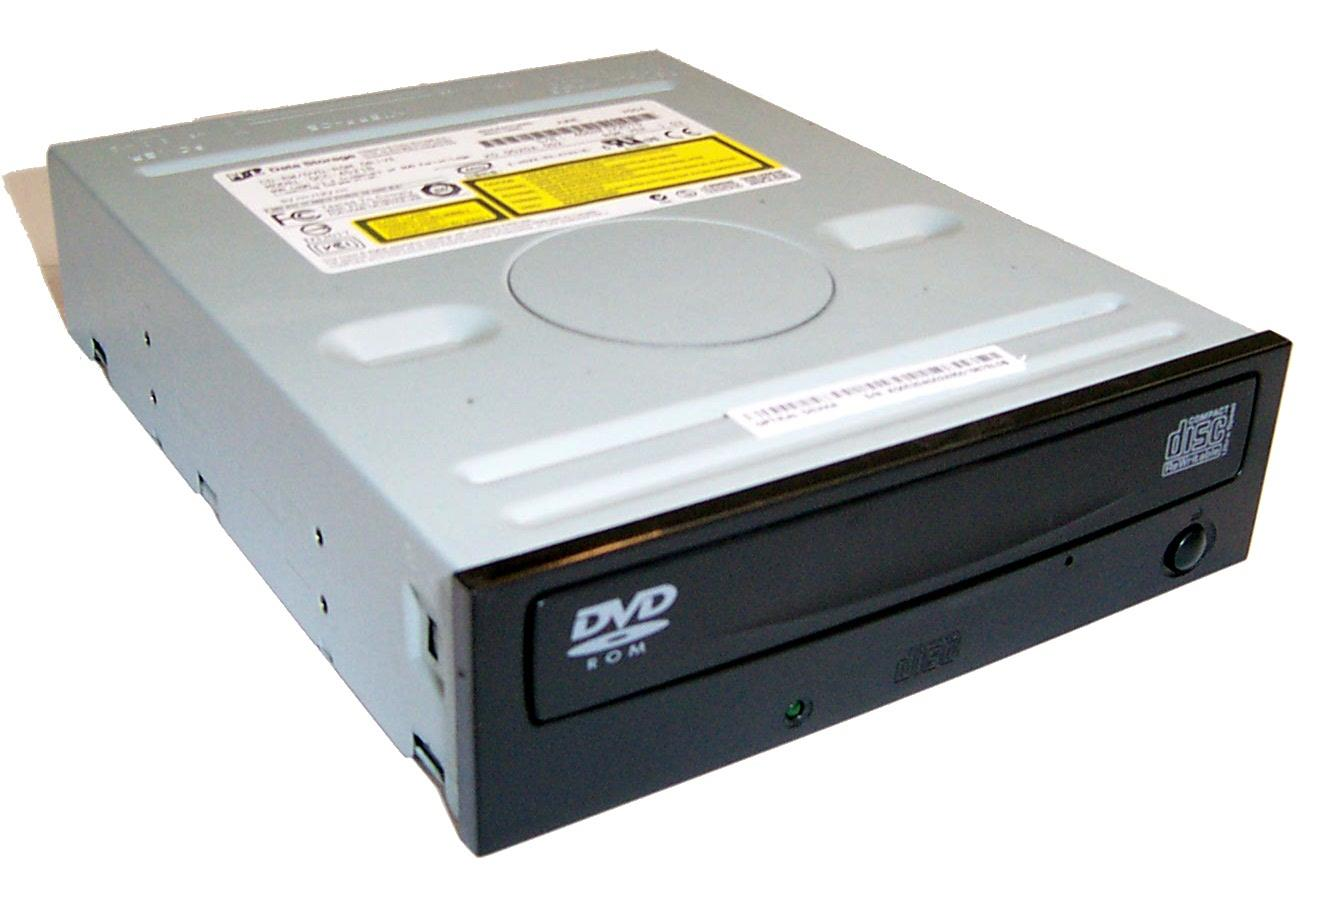 IDE CD-RW/DVD-ROM Drive (USED)